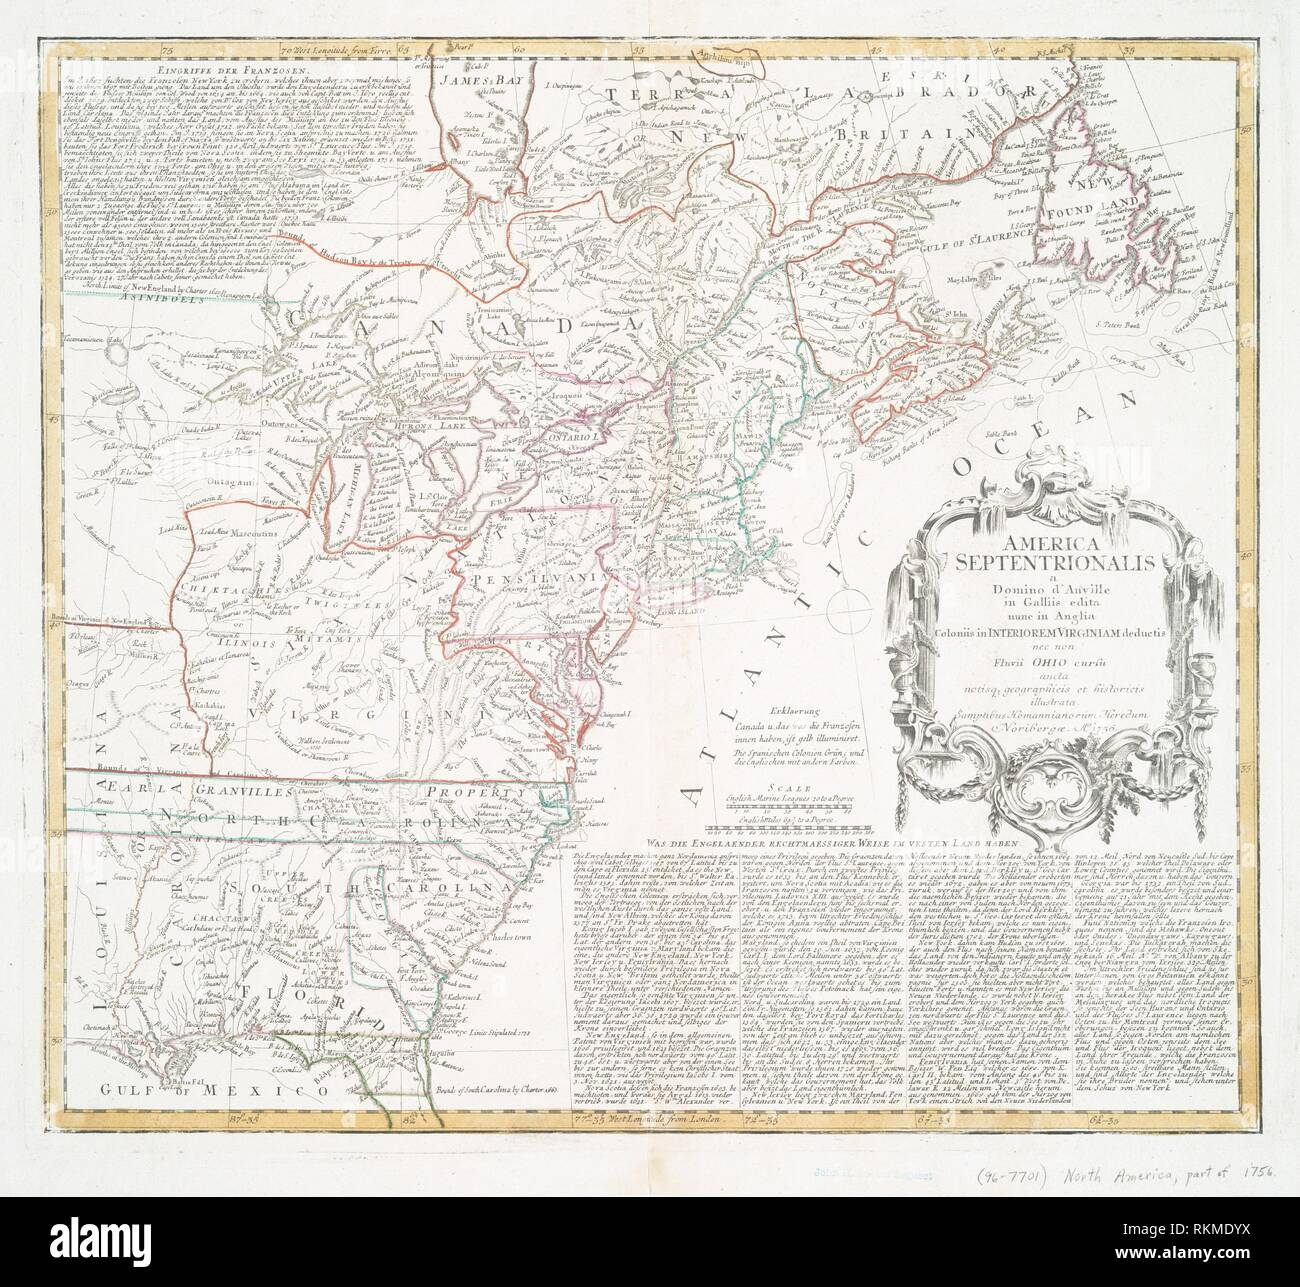 Danville Map Stock Photos & Danville Map Stock Images - Alamy on